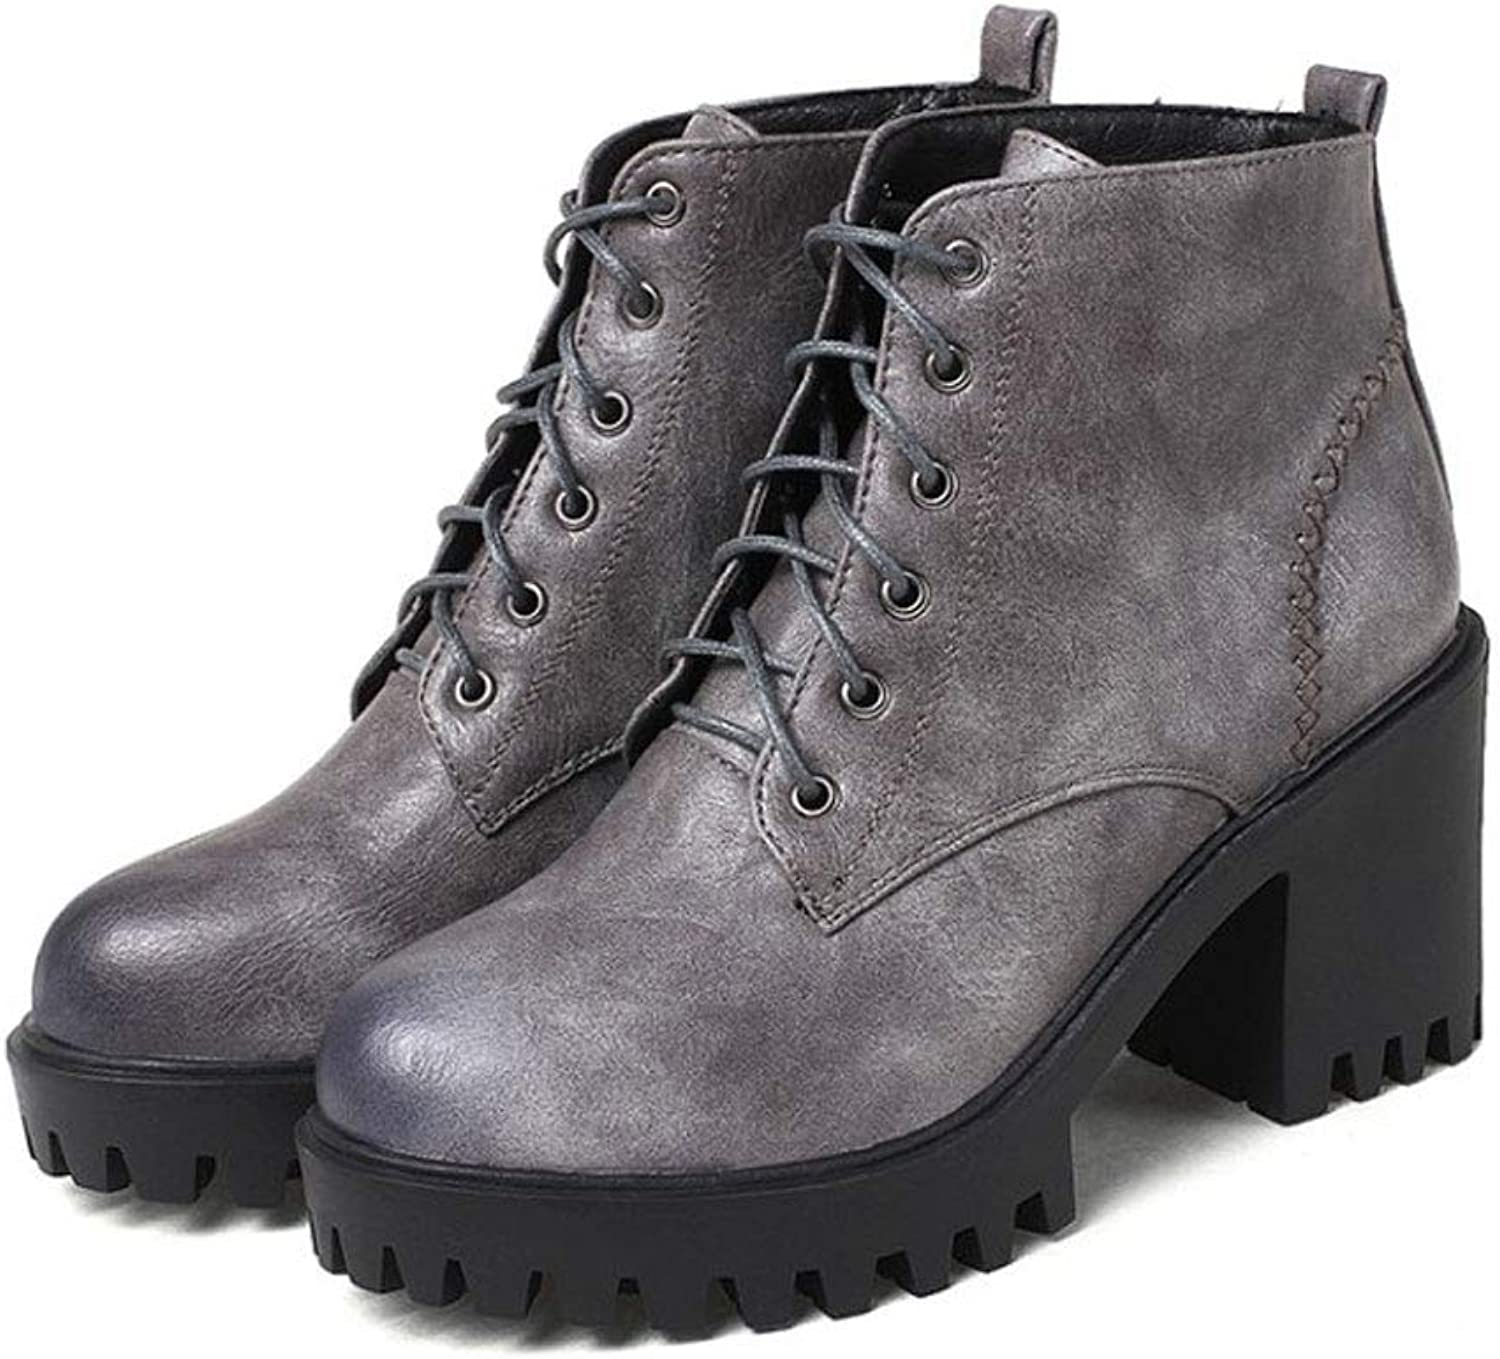 Lace-Up Short Boots, High Heels Ankle Boots Thick with Round Head Low Boots Waterproof Platform Non-Slip Martin Boots Women's Comfortable shoes